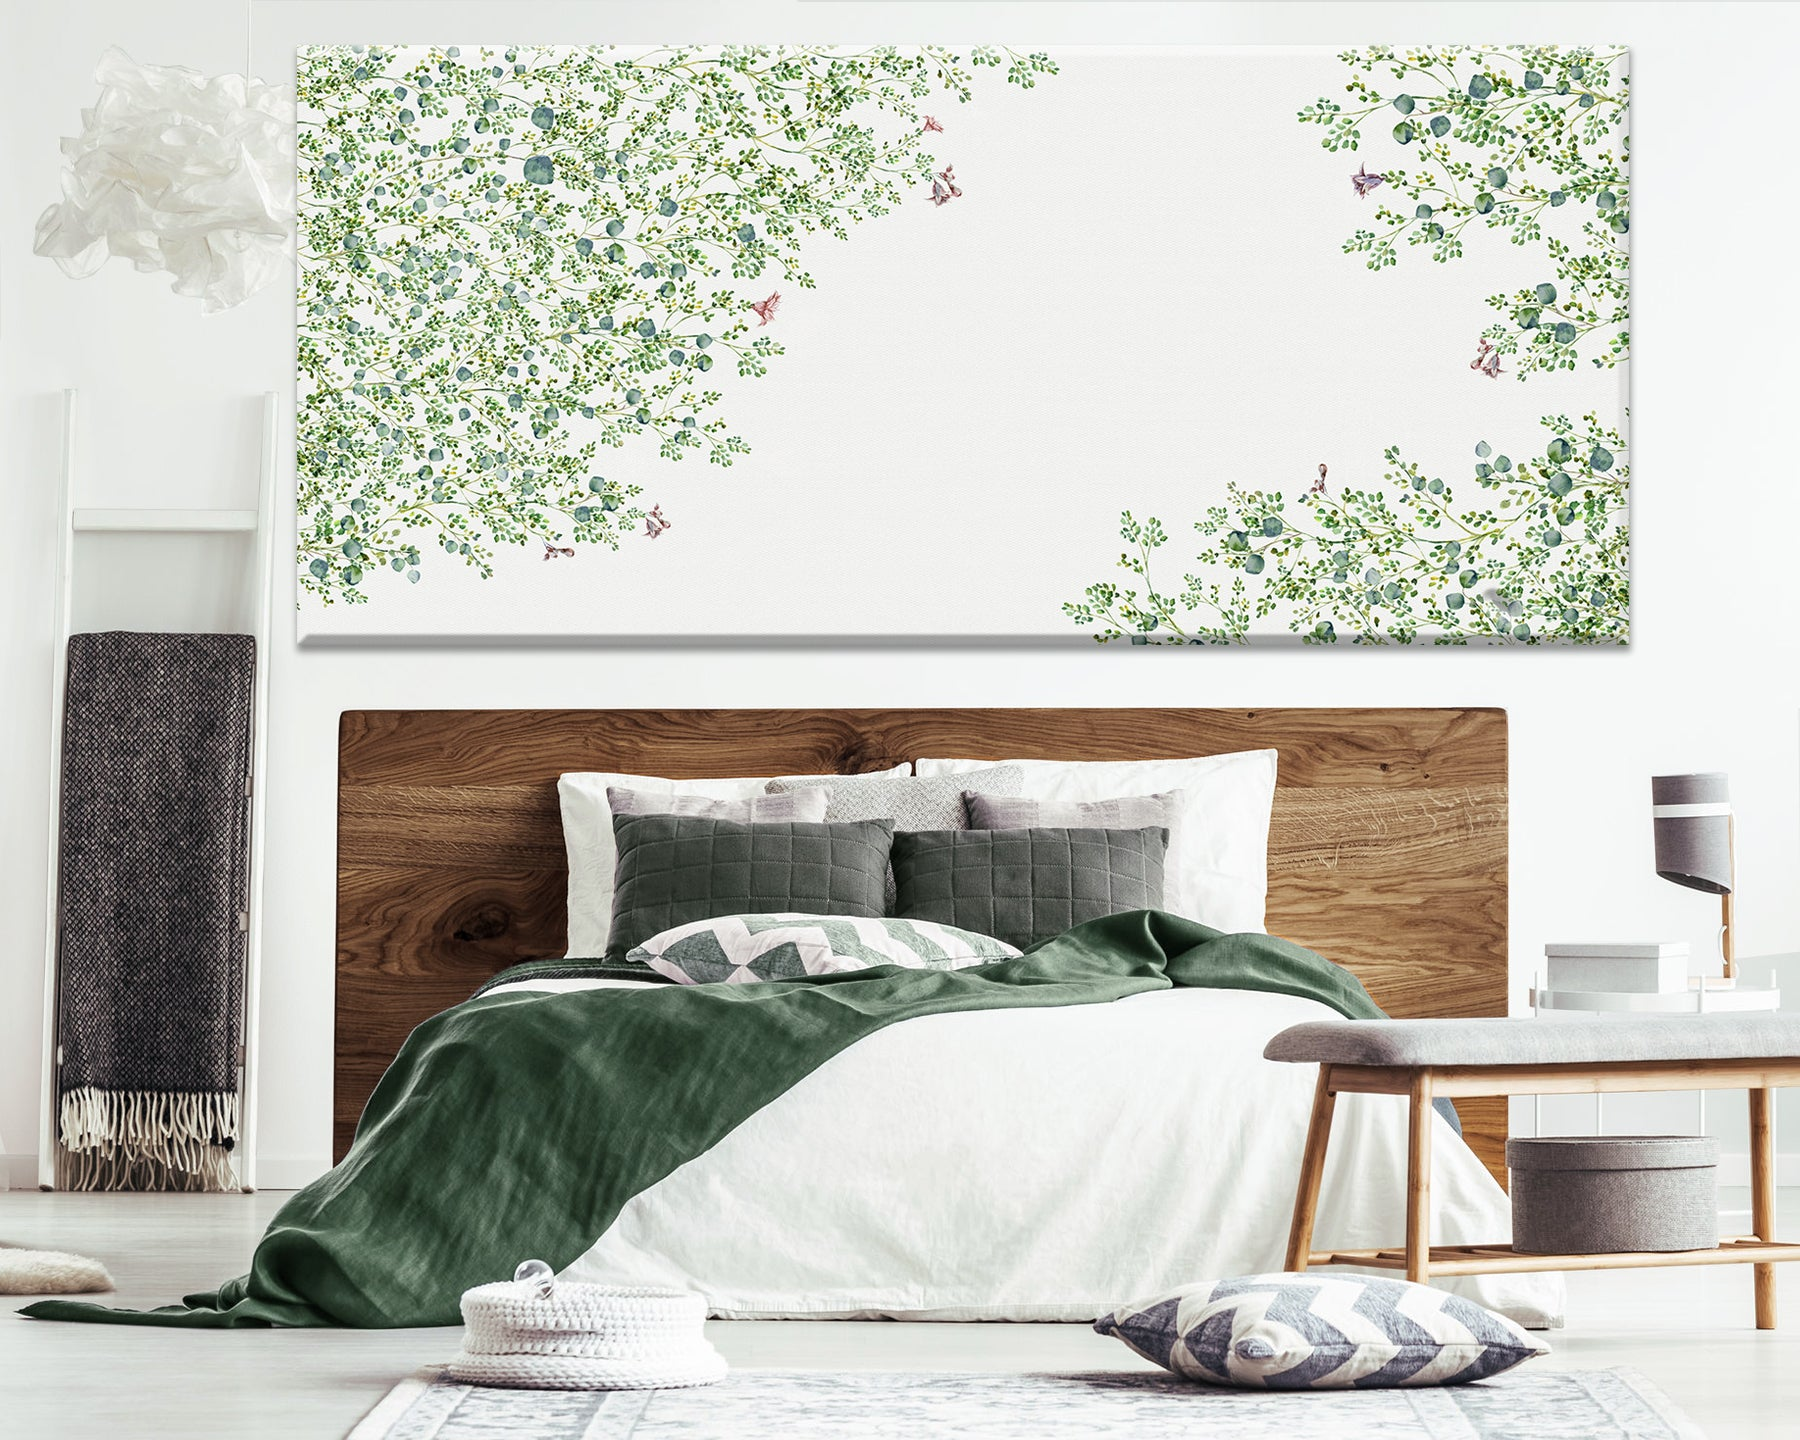 Canvas painting of a green abstract tree, hanged above bed